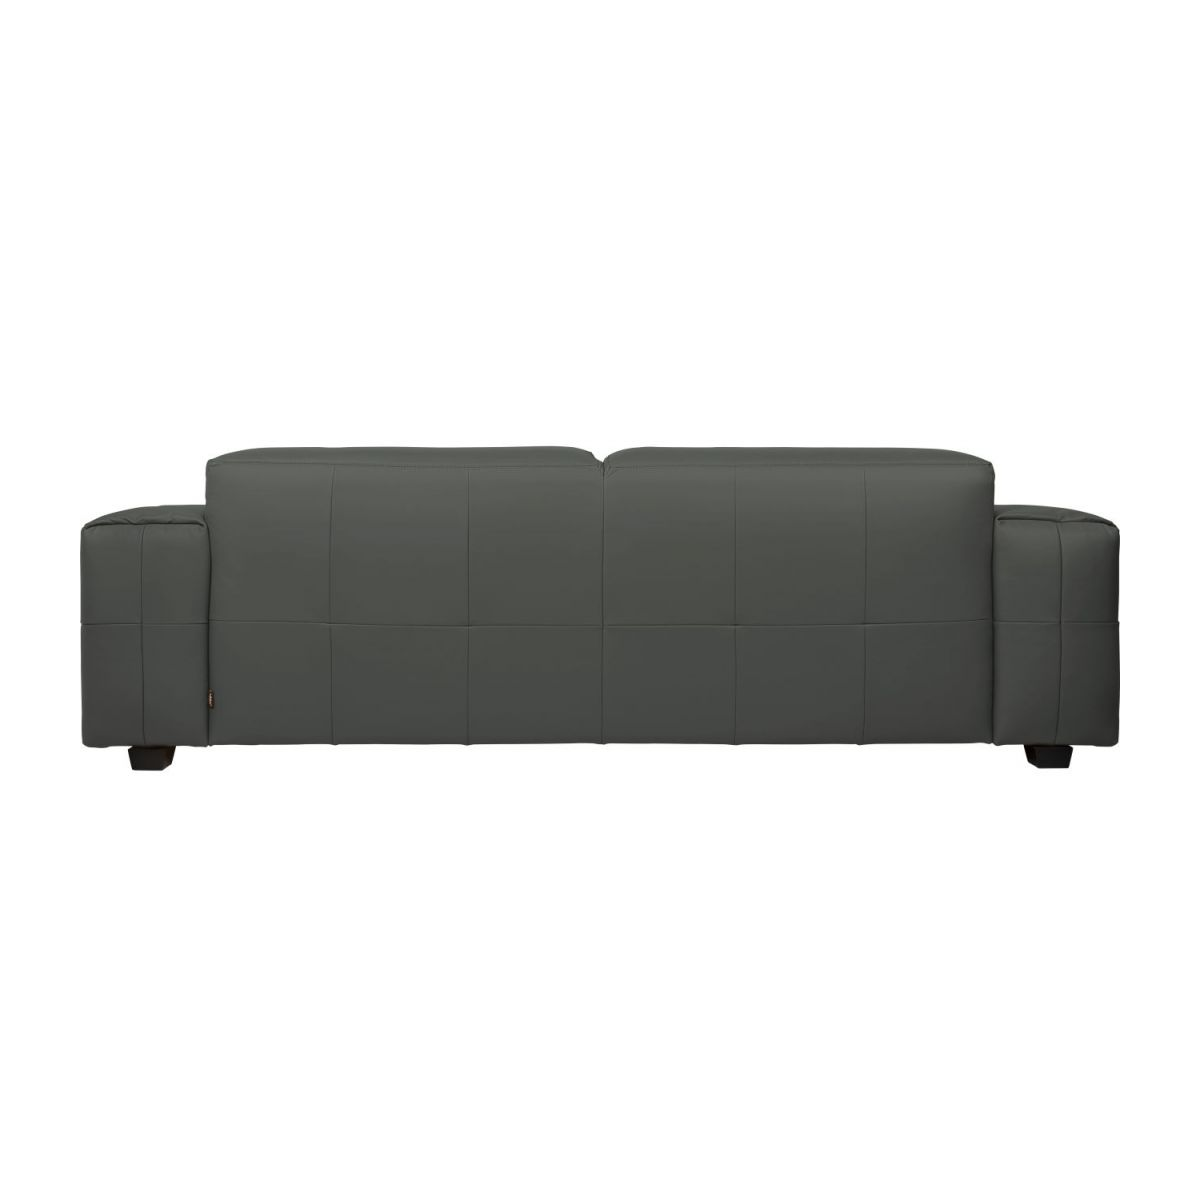 2 seater sofa in Savoy semi-aniline leather, grey n°5